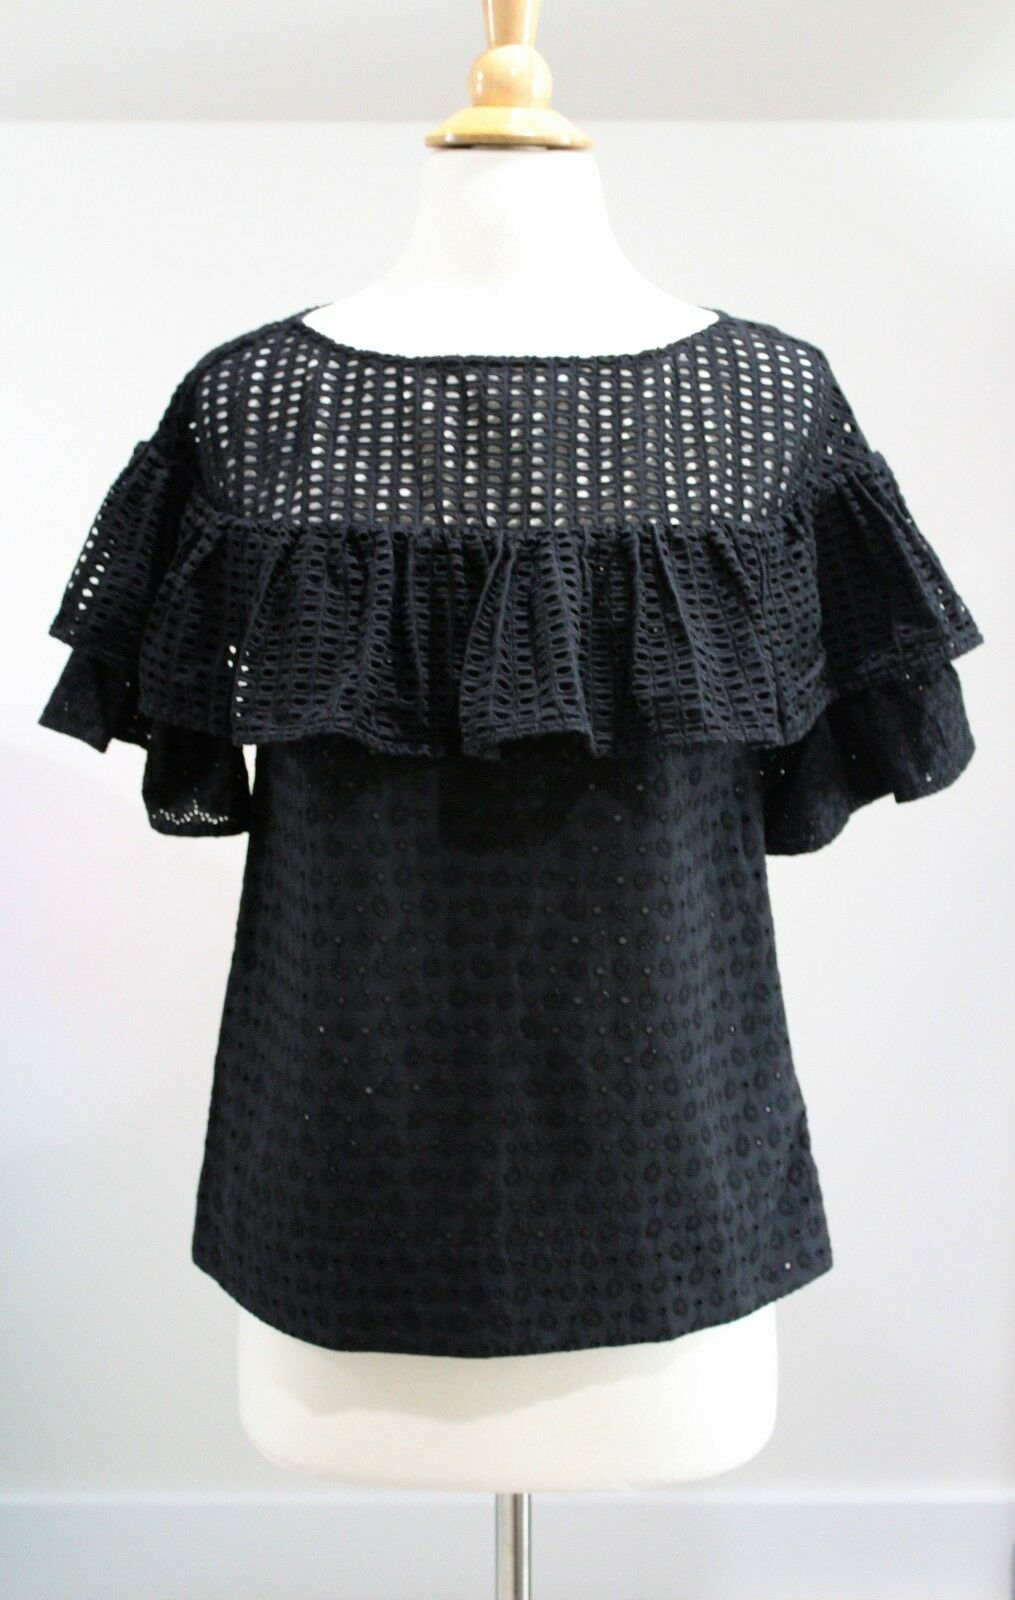 NWT J CREW COLLECTION  schwarz Cotton Eyelet Flounce Top Sz 0 A7877 Ruffle